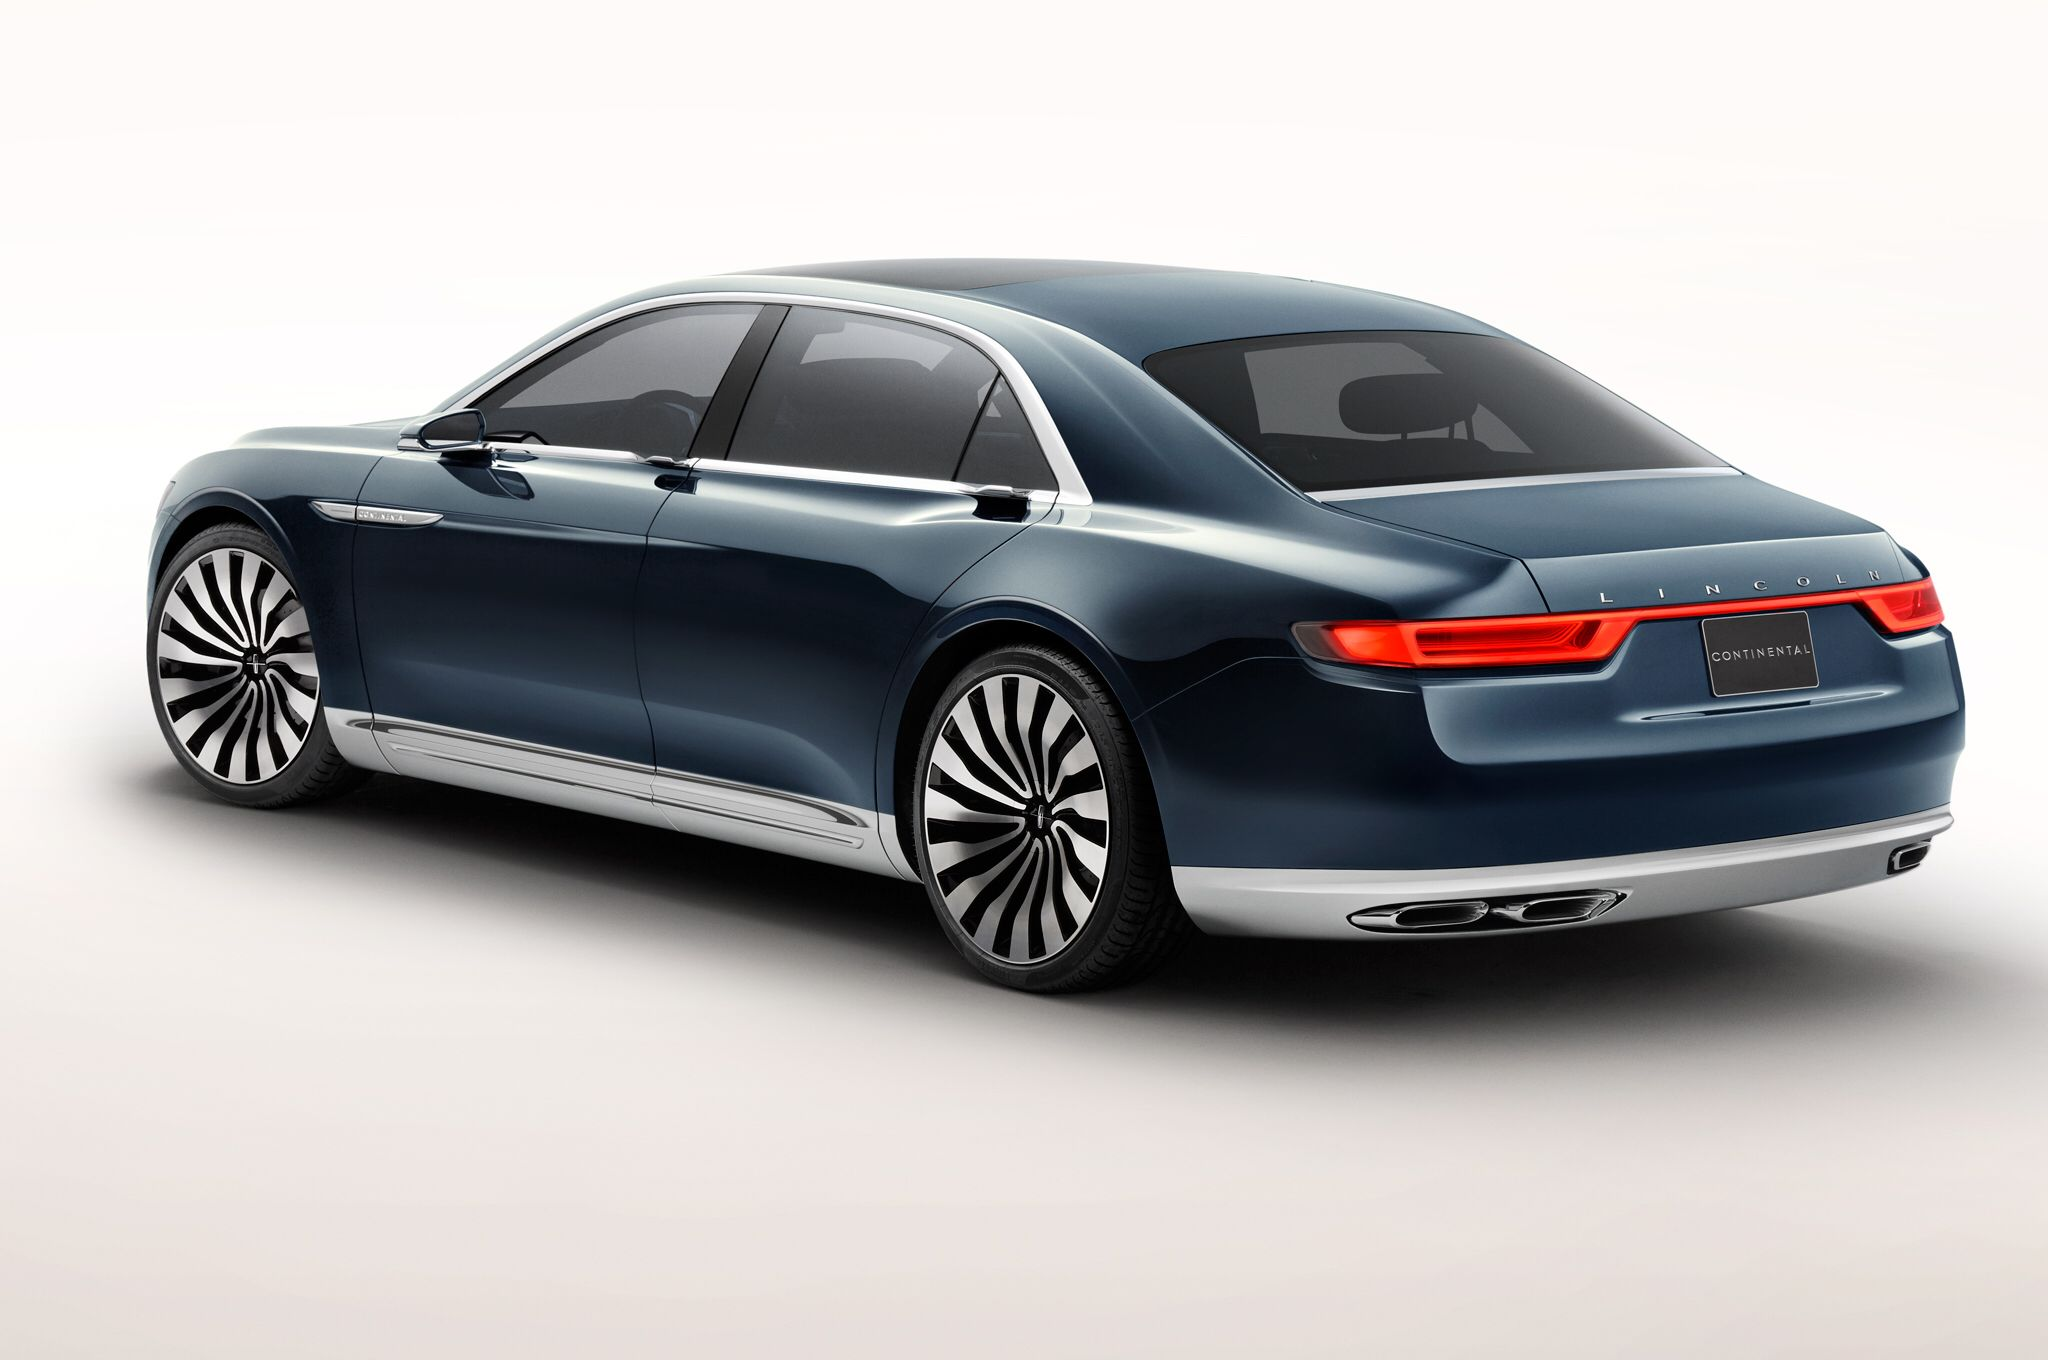 2017 Lincoln Continental Concept At Nyc Auto Show